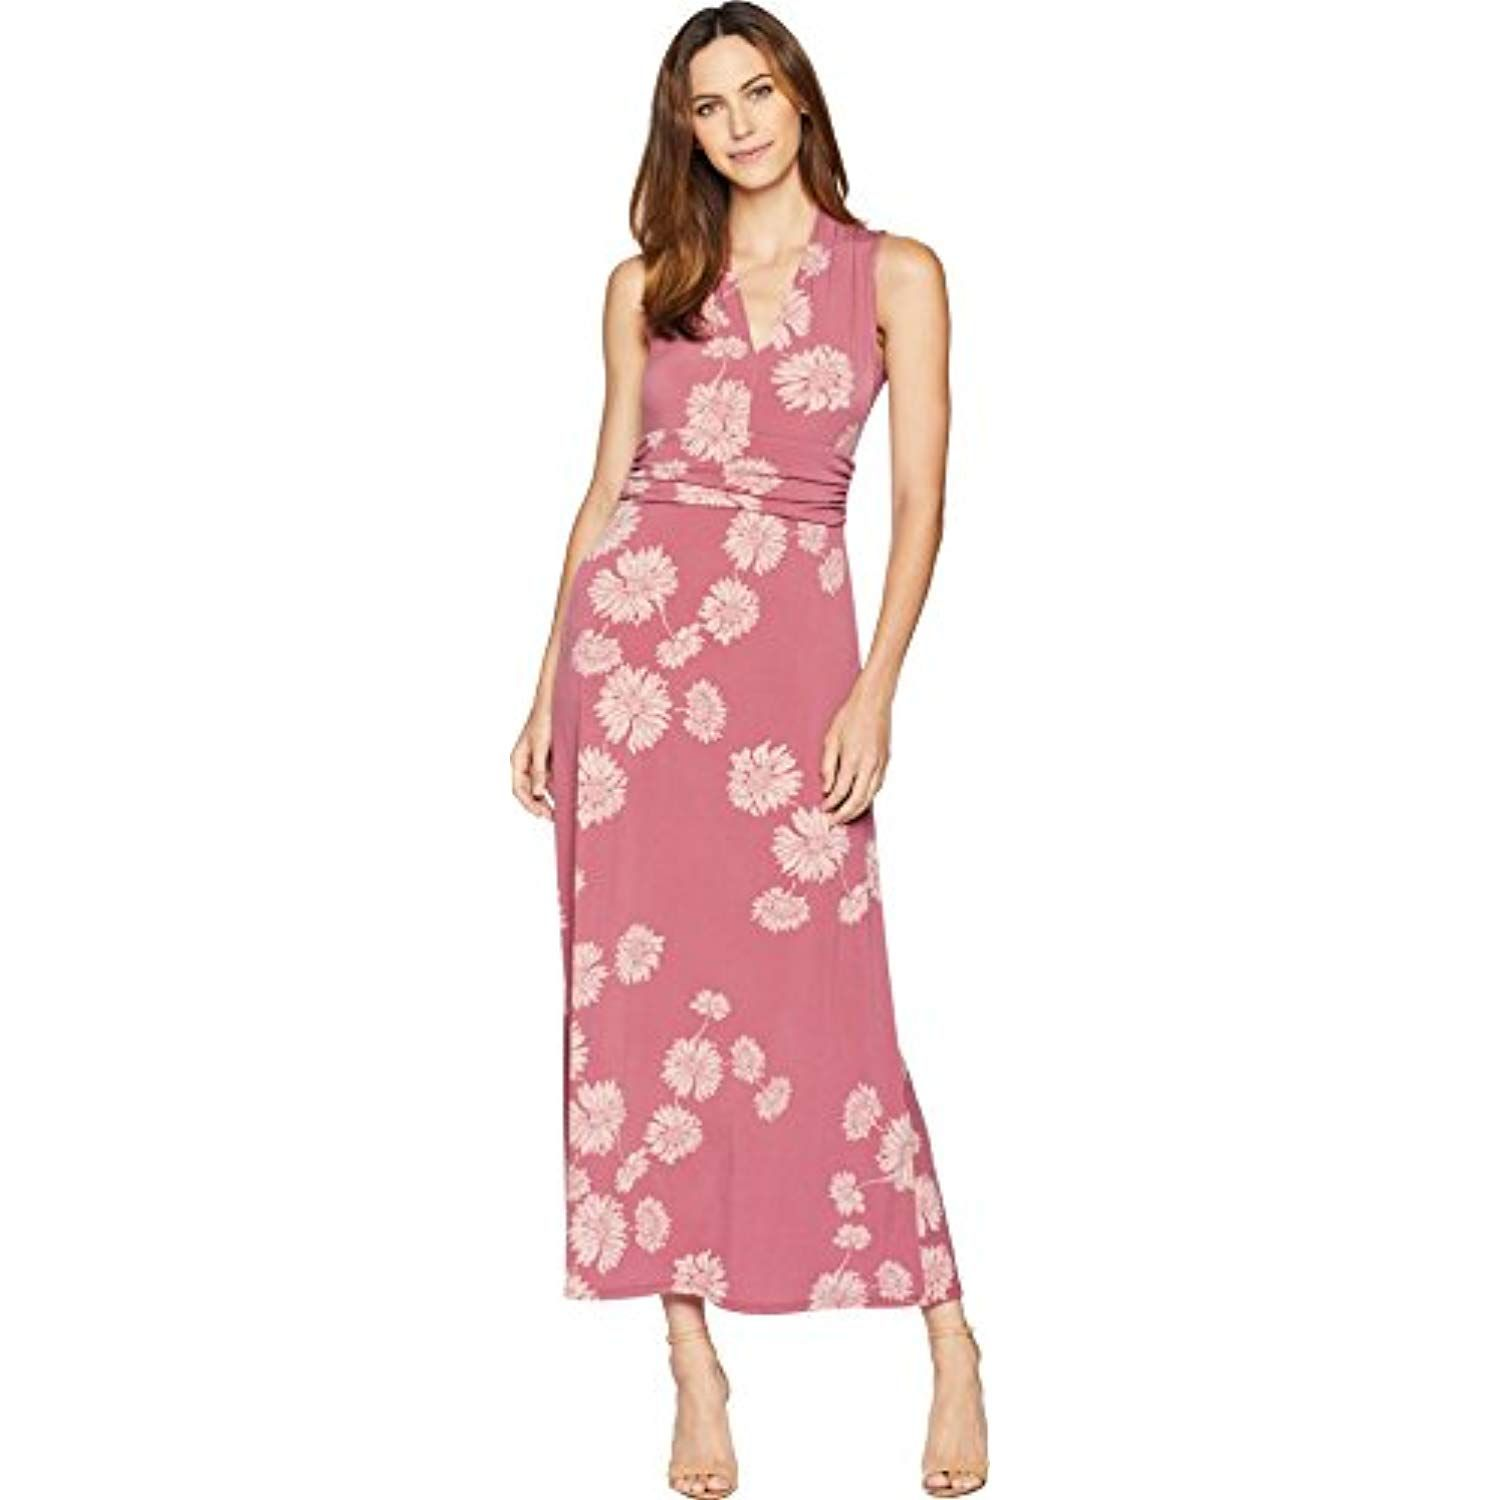 Womens Sleeveless Chateau Floral Halter Maxi Dress Want To Know More Click On The Image This Floral Print Maxi Dress Printed Maxi Dress Floral Print Maxi [ 1500 x 1500 Pixel ]